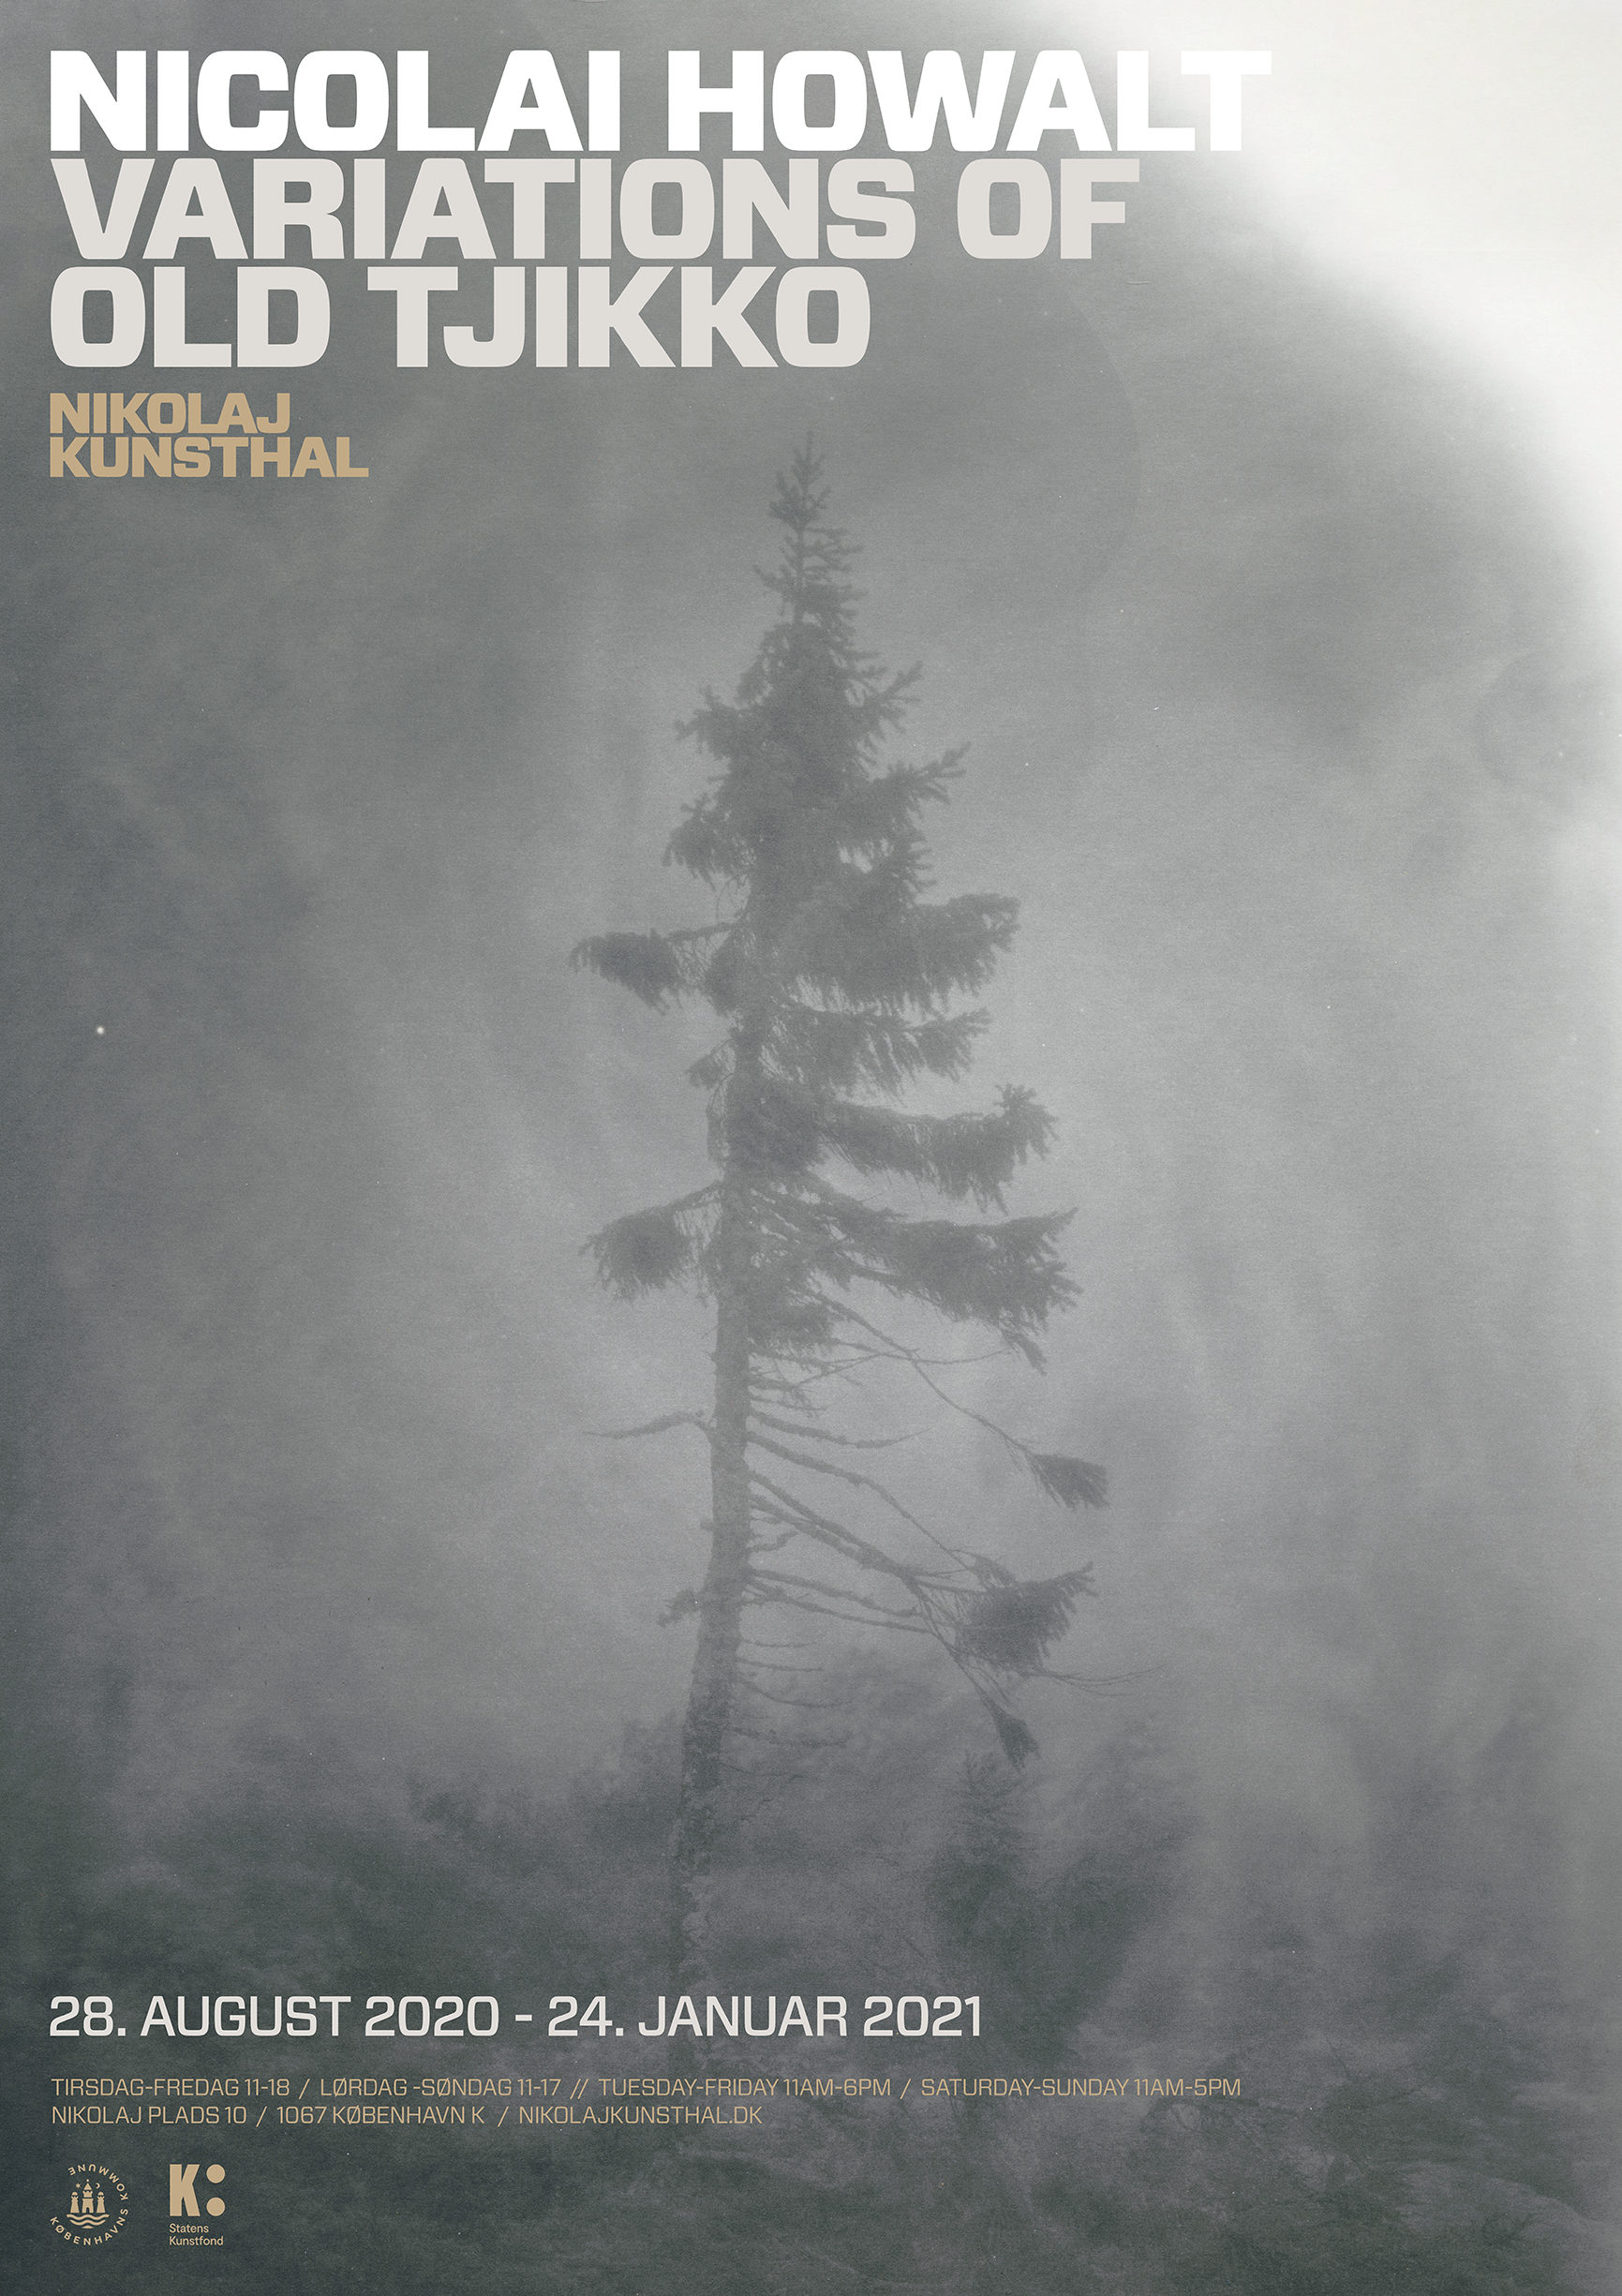 Exhibition poster featuring an image of the tree Old Tjikko by artist Nicolai Howalt